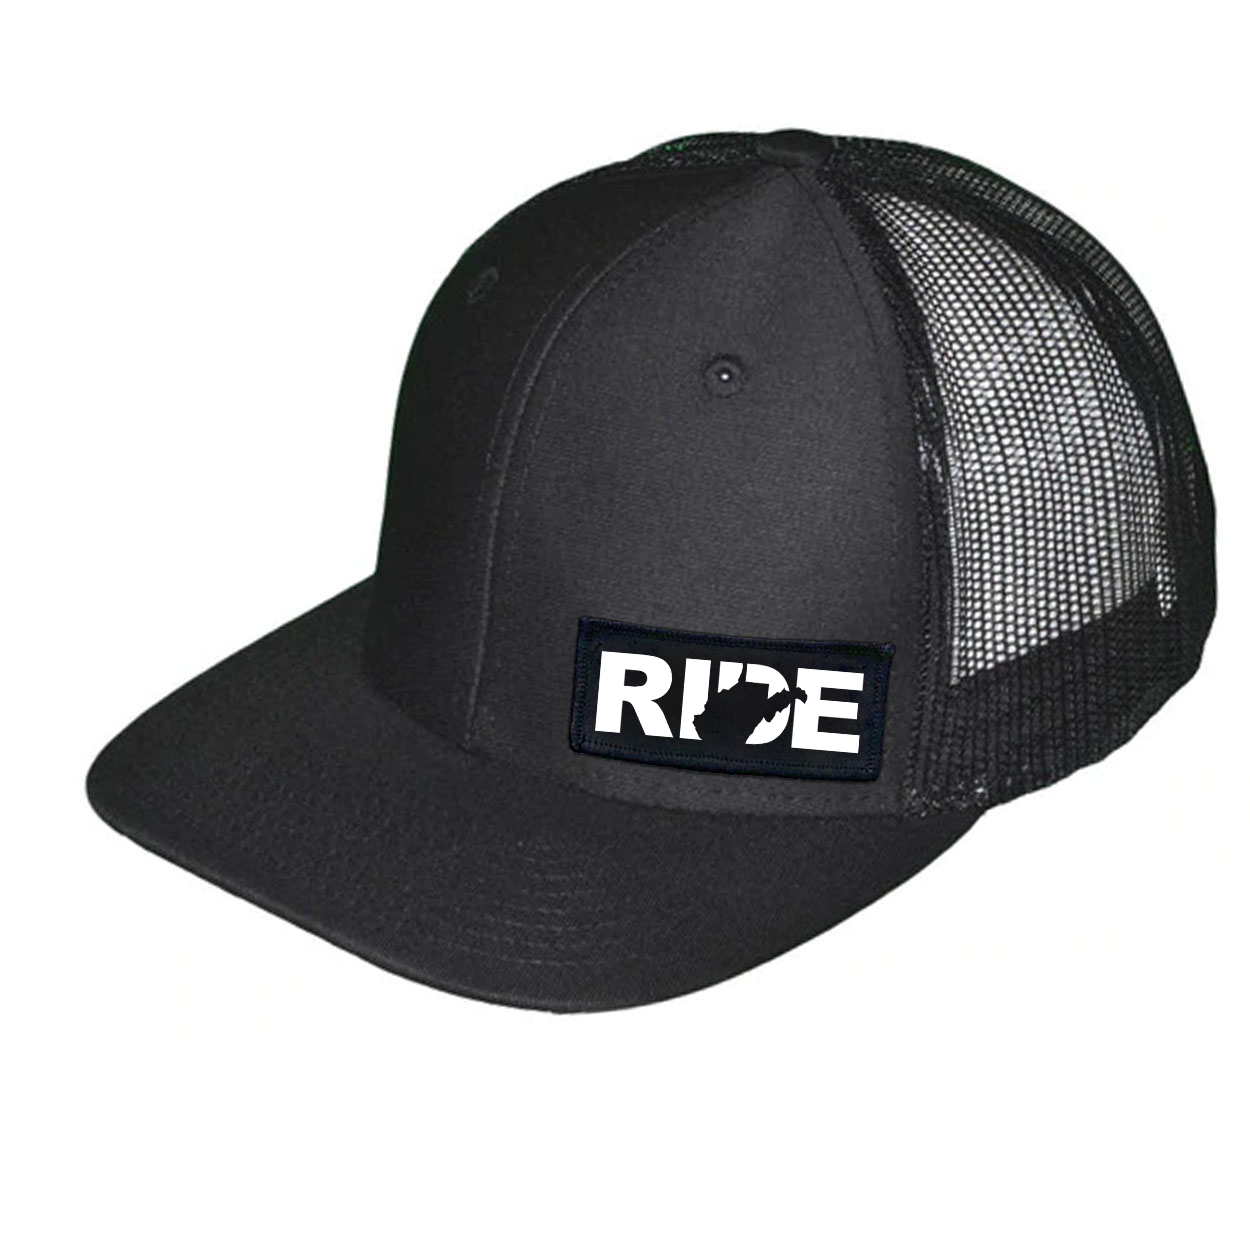 Ride West Virginia Night Out Woven Patch Snapback Trucker Hat Black (White Logo)